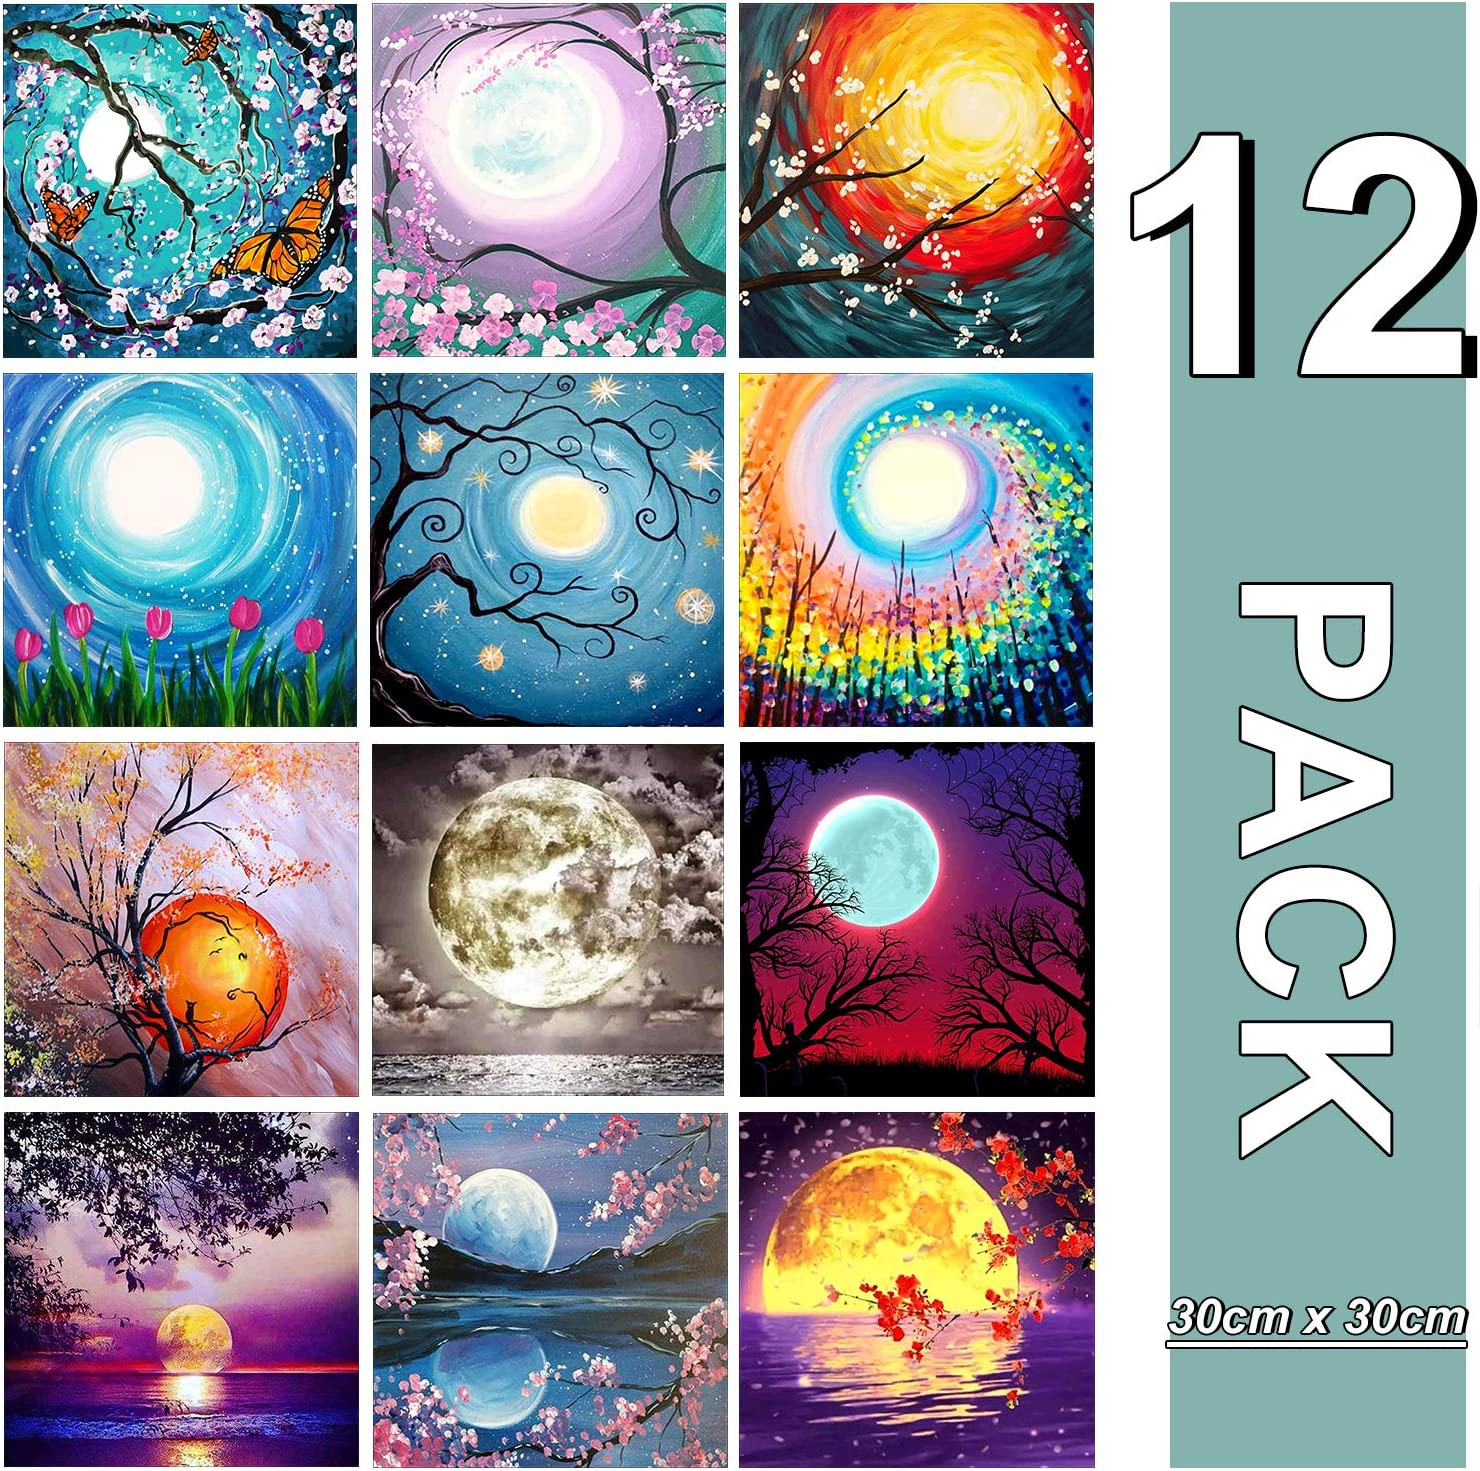 Canvas 12X12In XPCARE 12 Pack 5d Diamond Painting Kits Full Drill Rhinestone Moon Diamond Pictures for Home Wall Decor